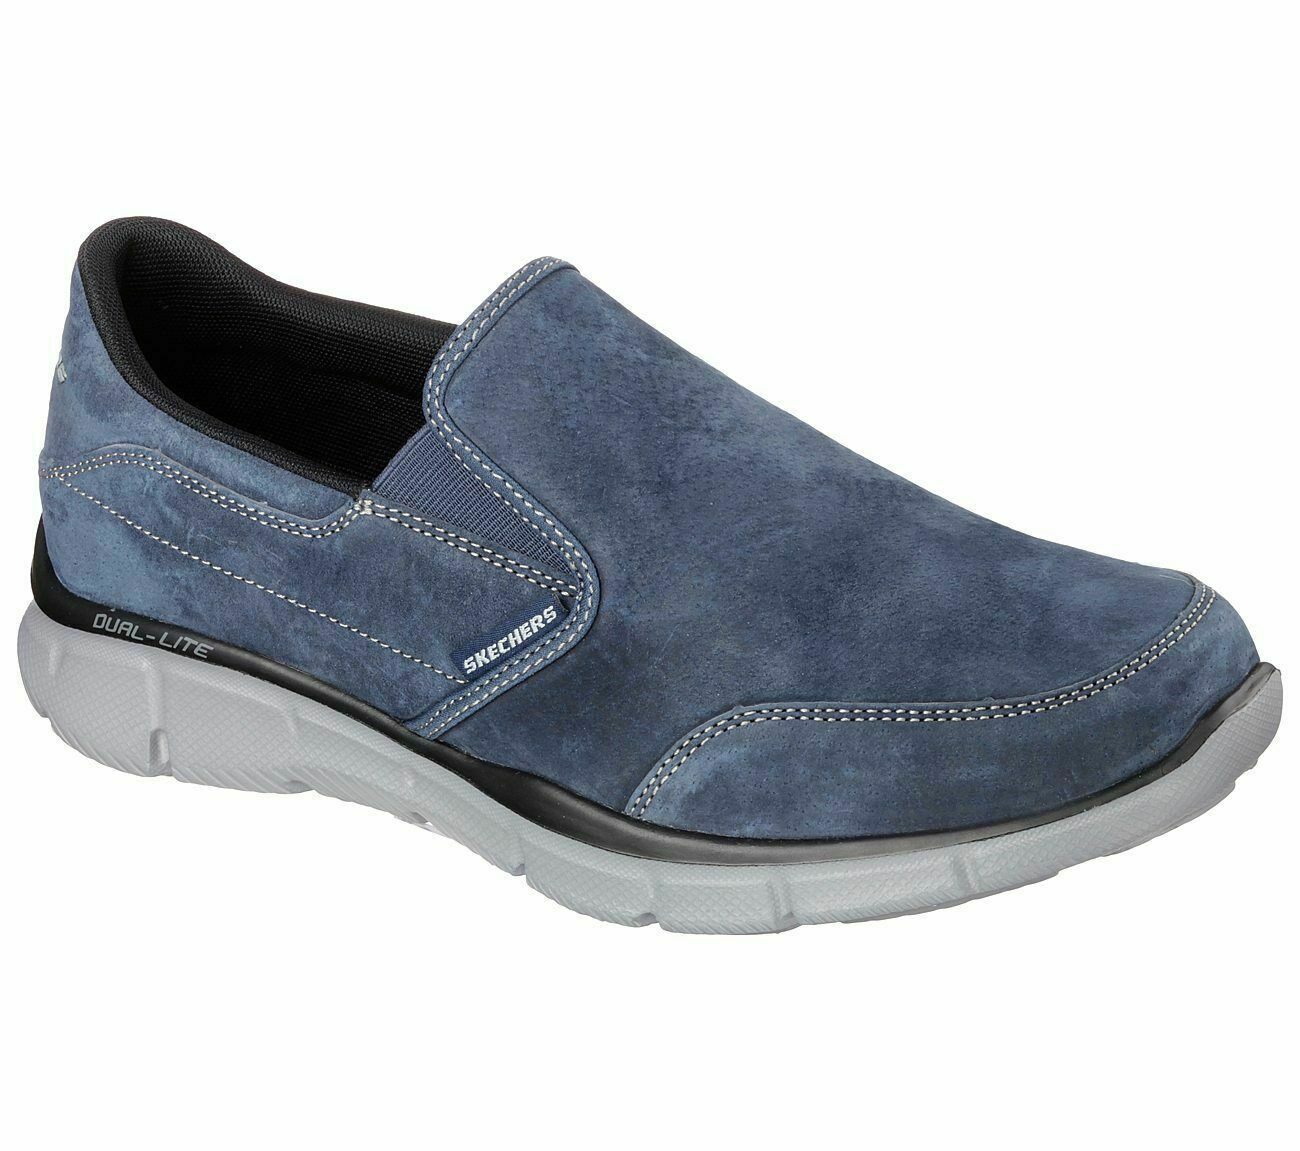 Skechers 51502 NVY Navy Mens Casual Comfort Slip On Suede Memory Foam schuhe